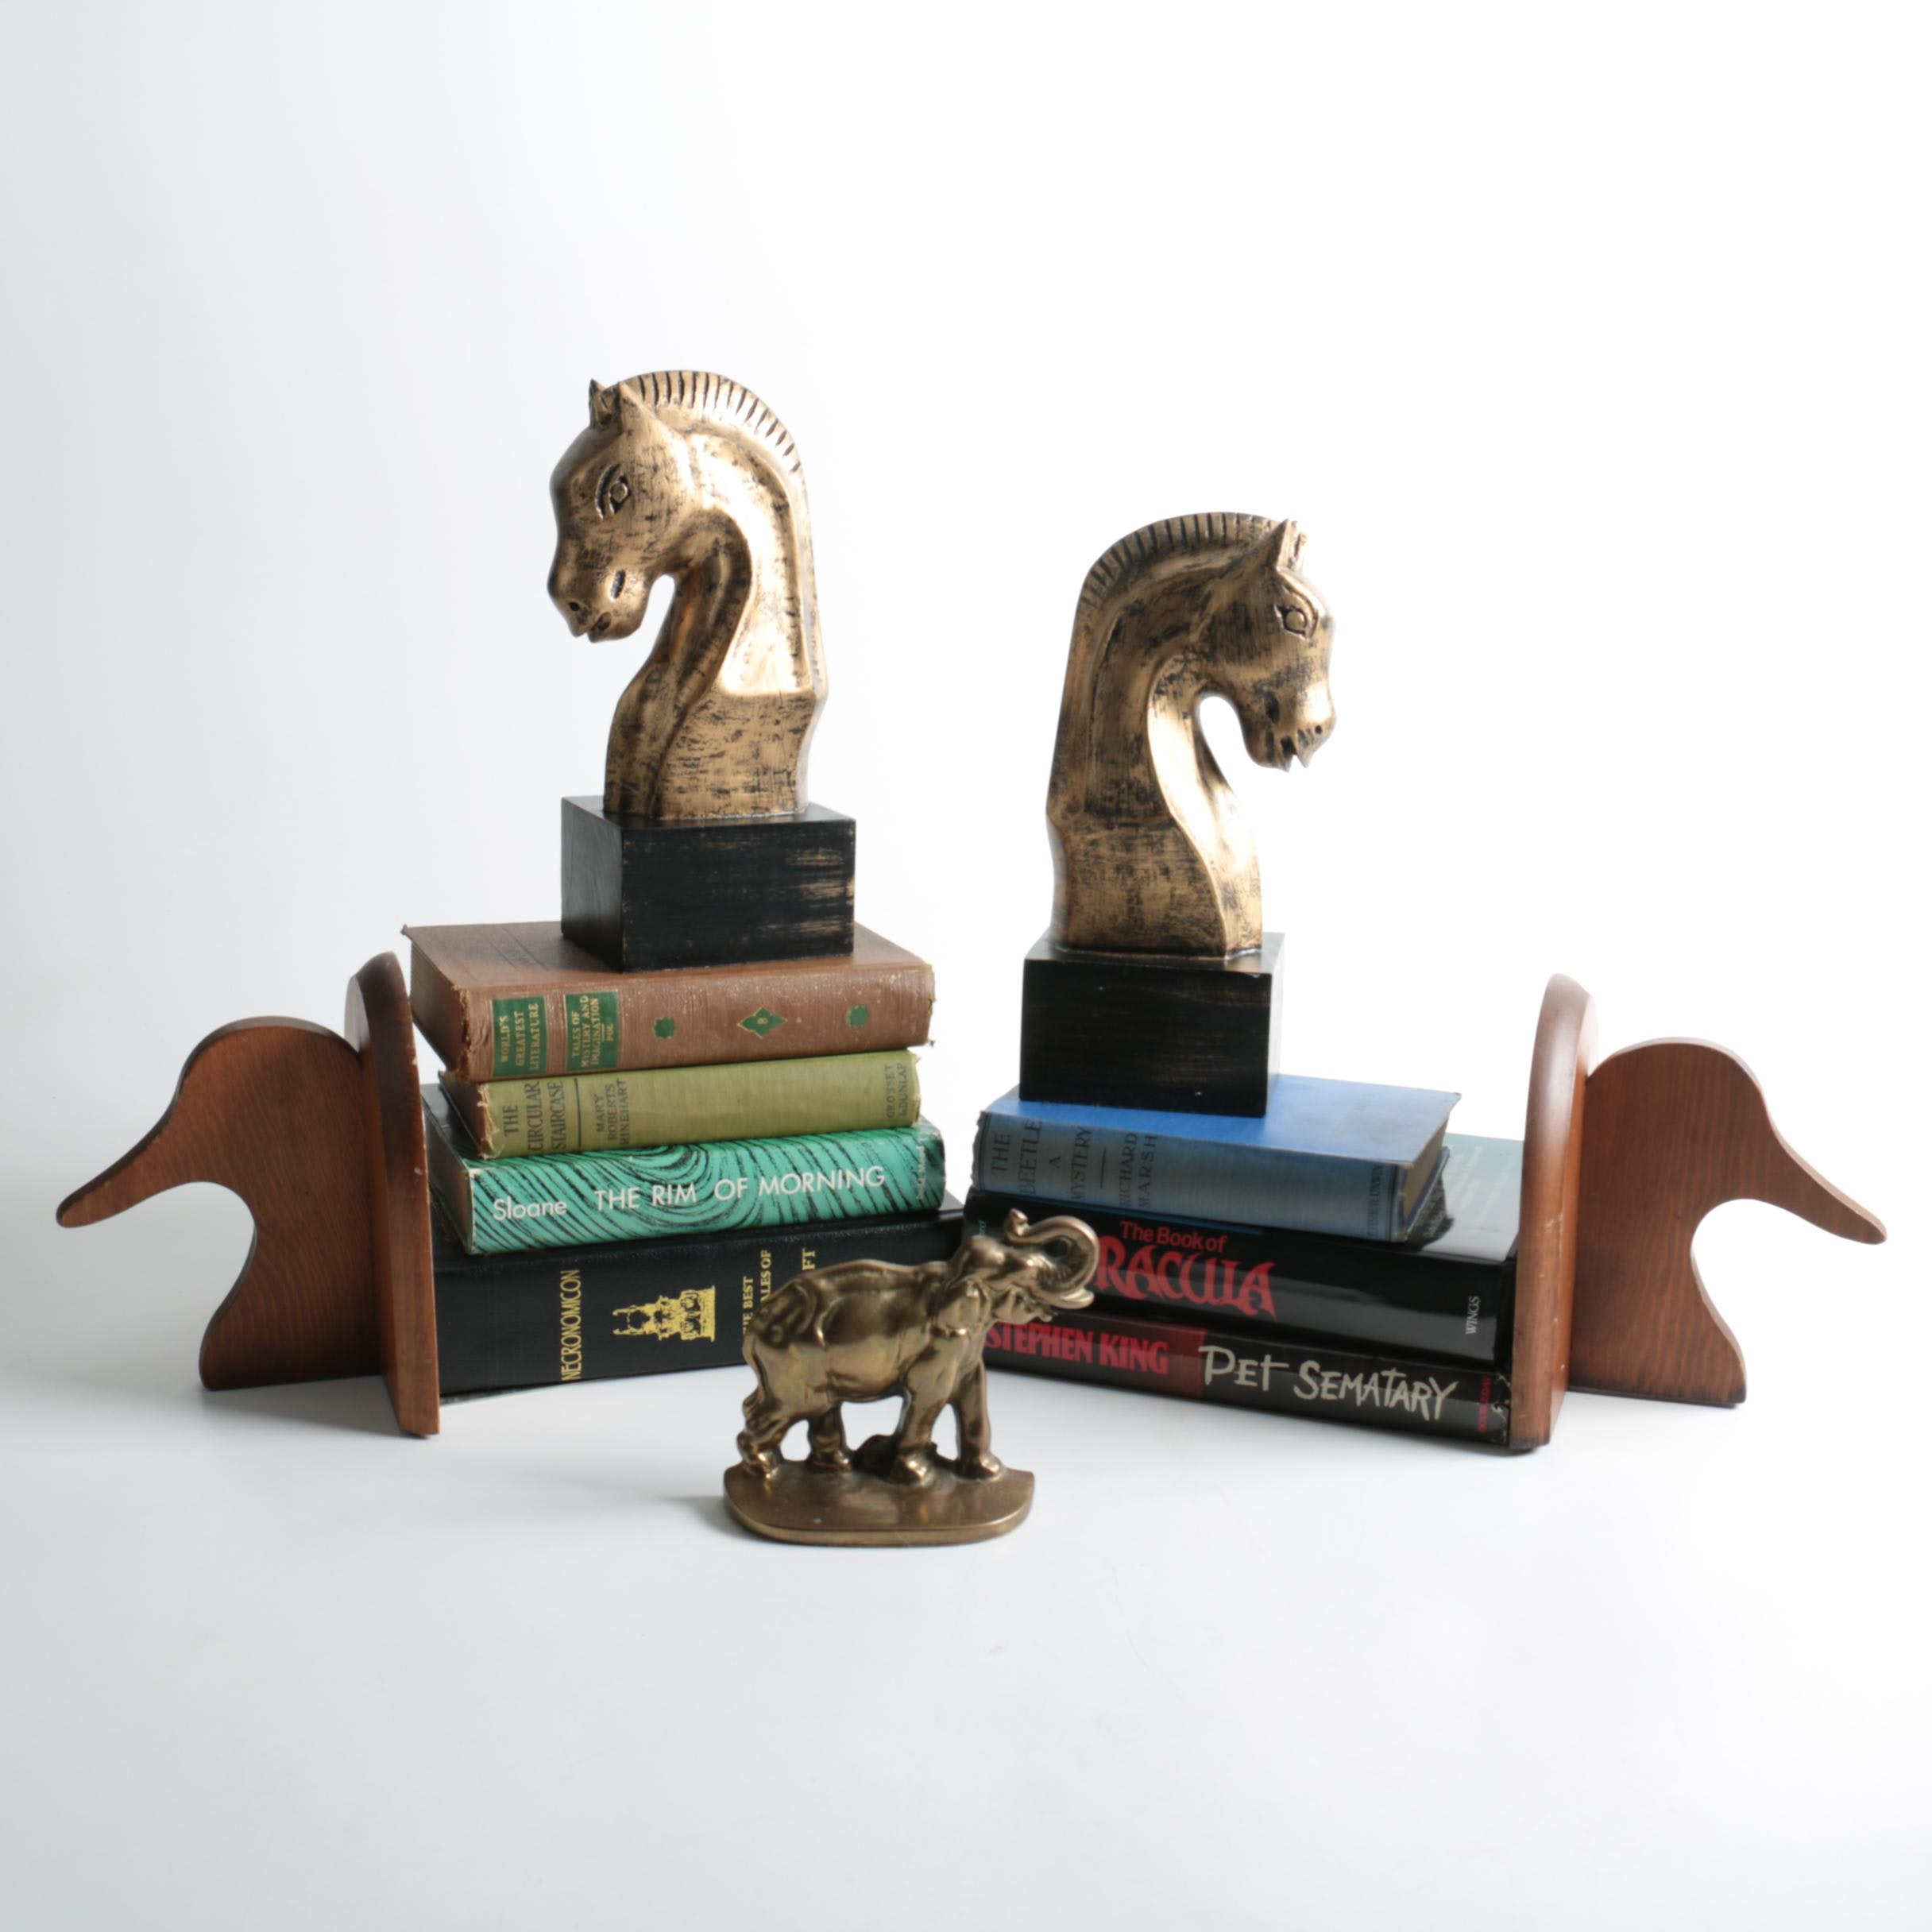 Assortment of Fiction Books and Bookends